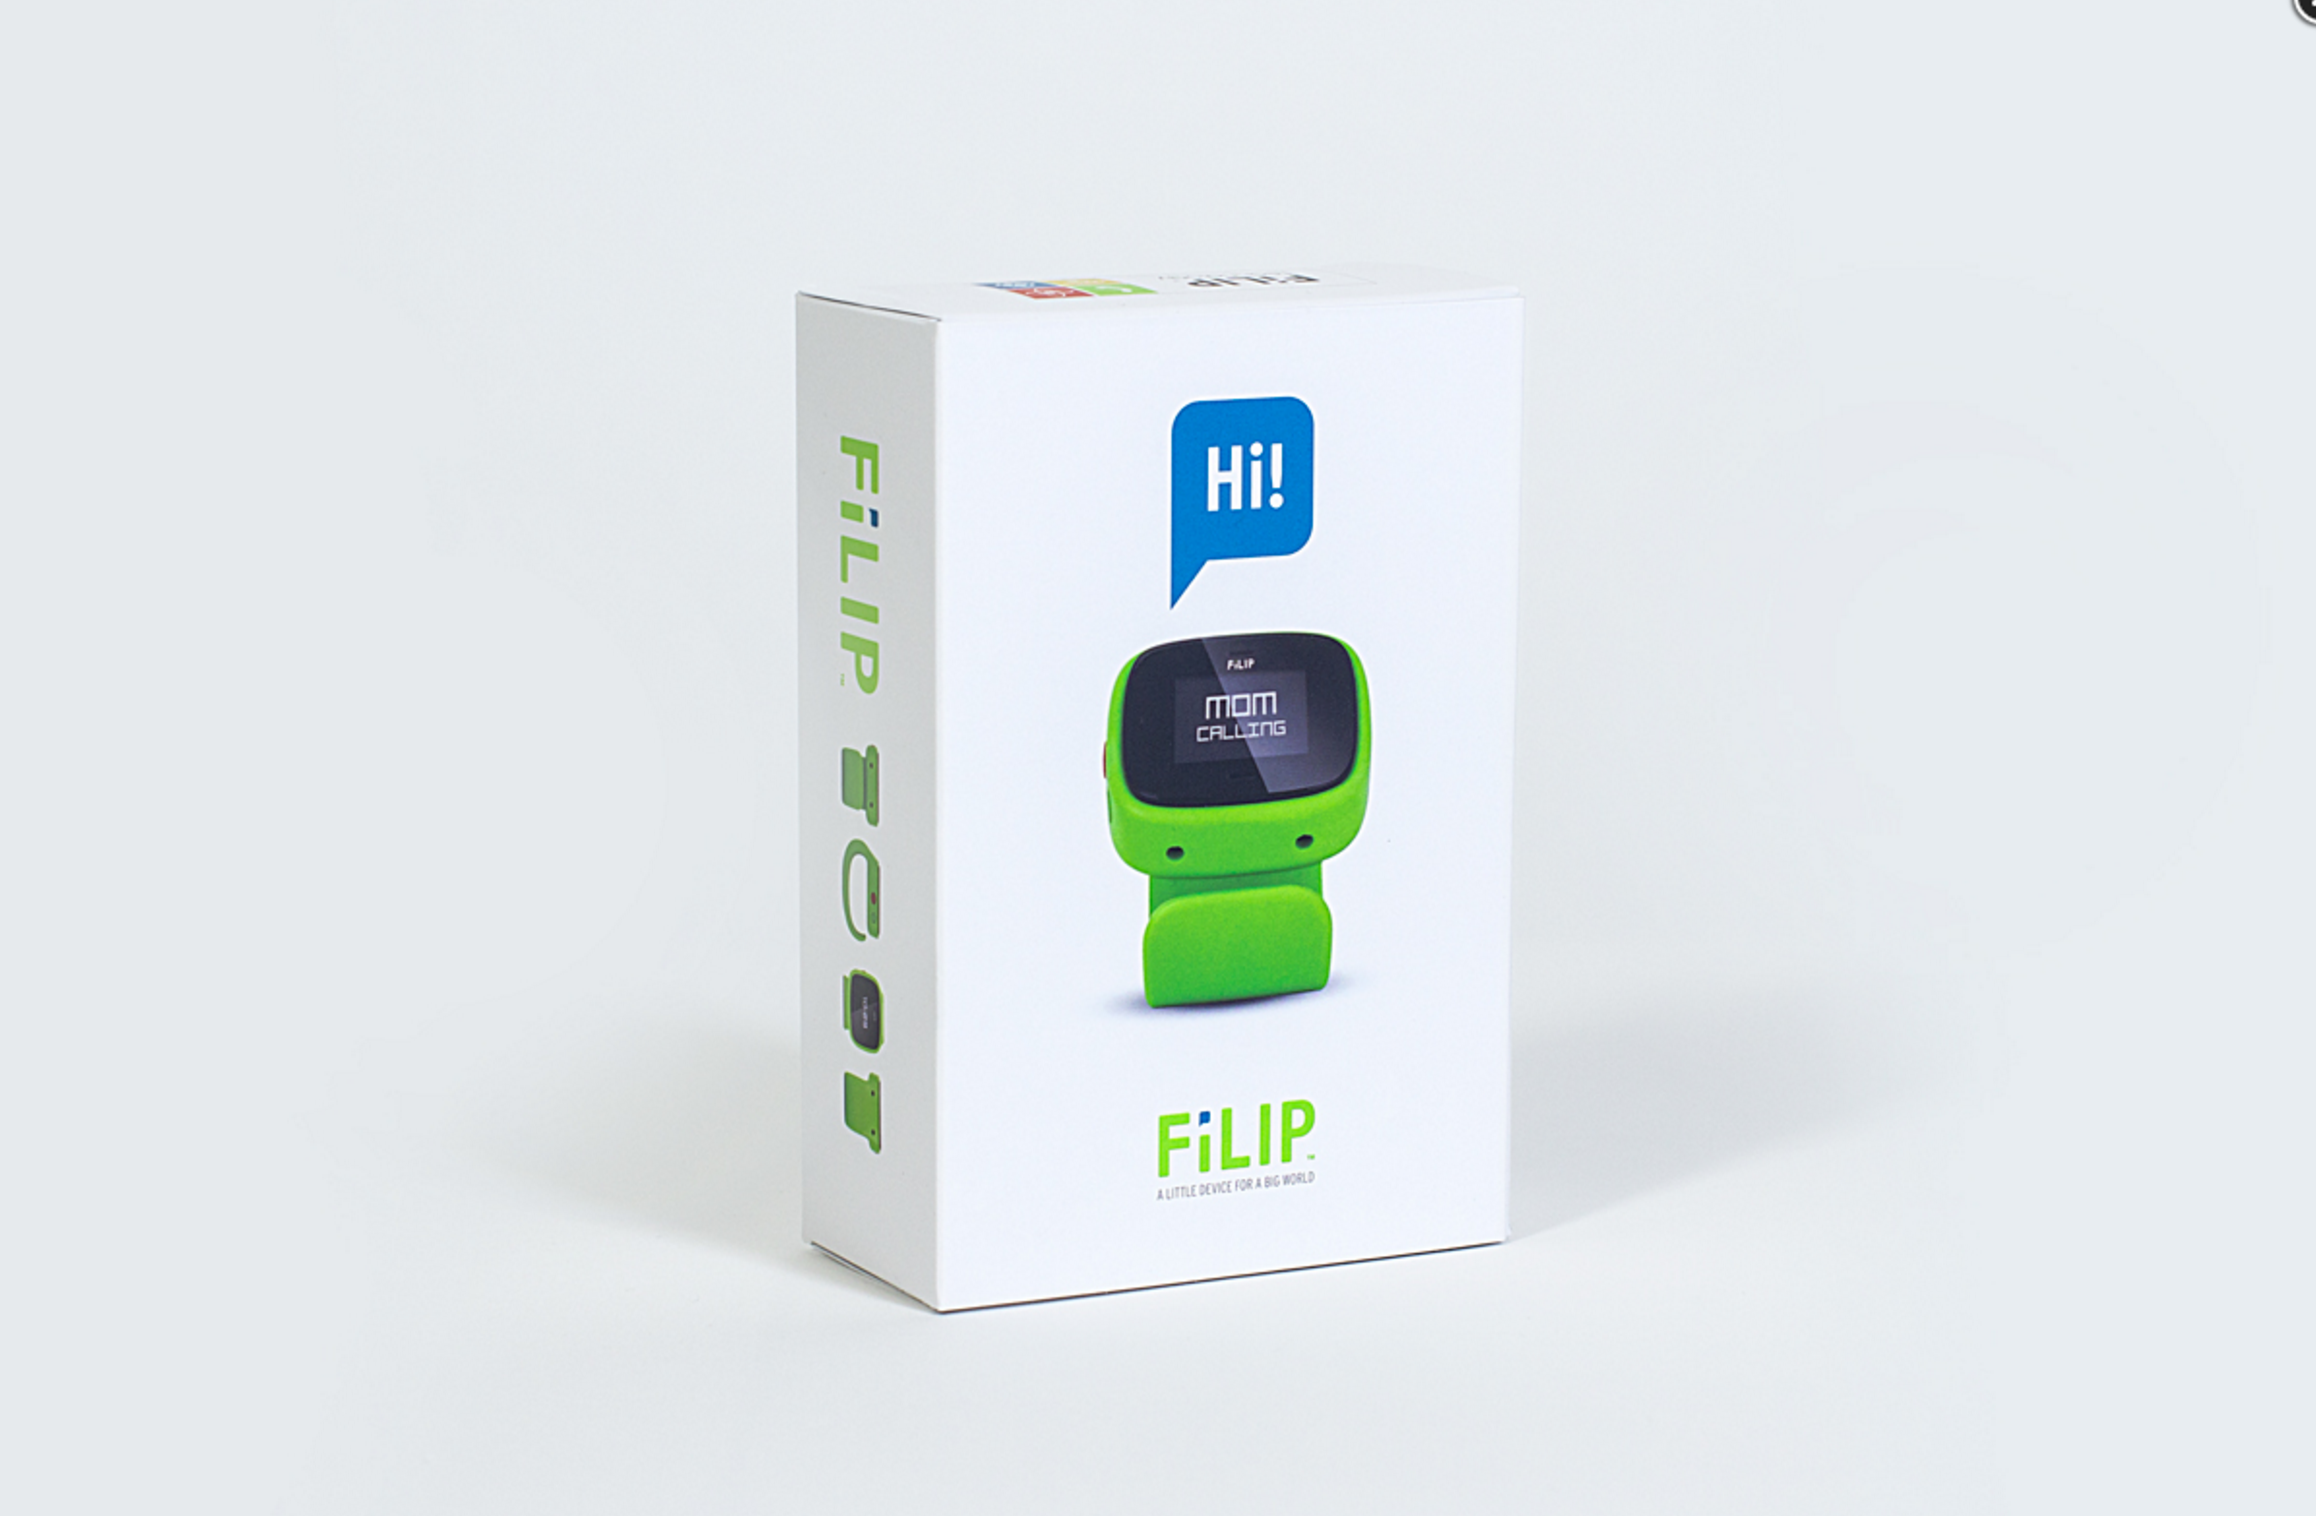 filip packaging 1